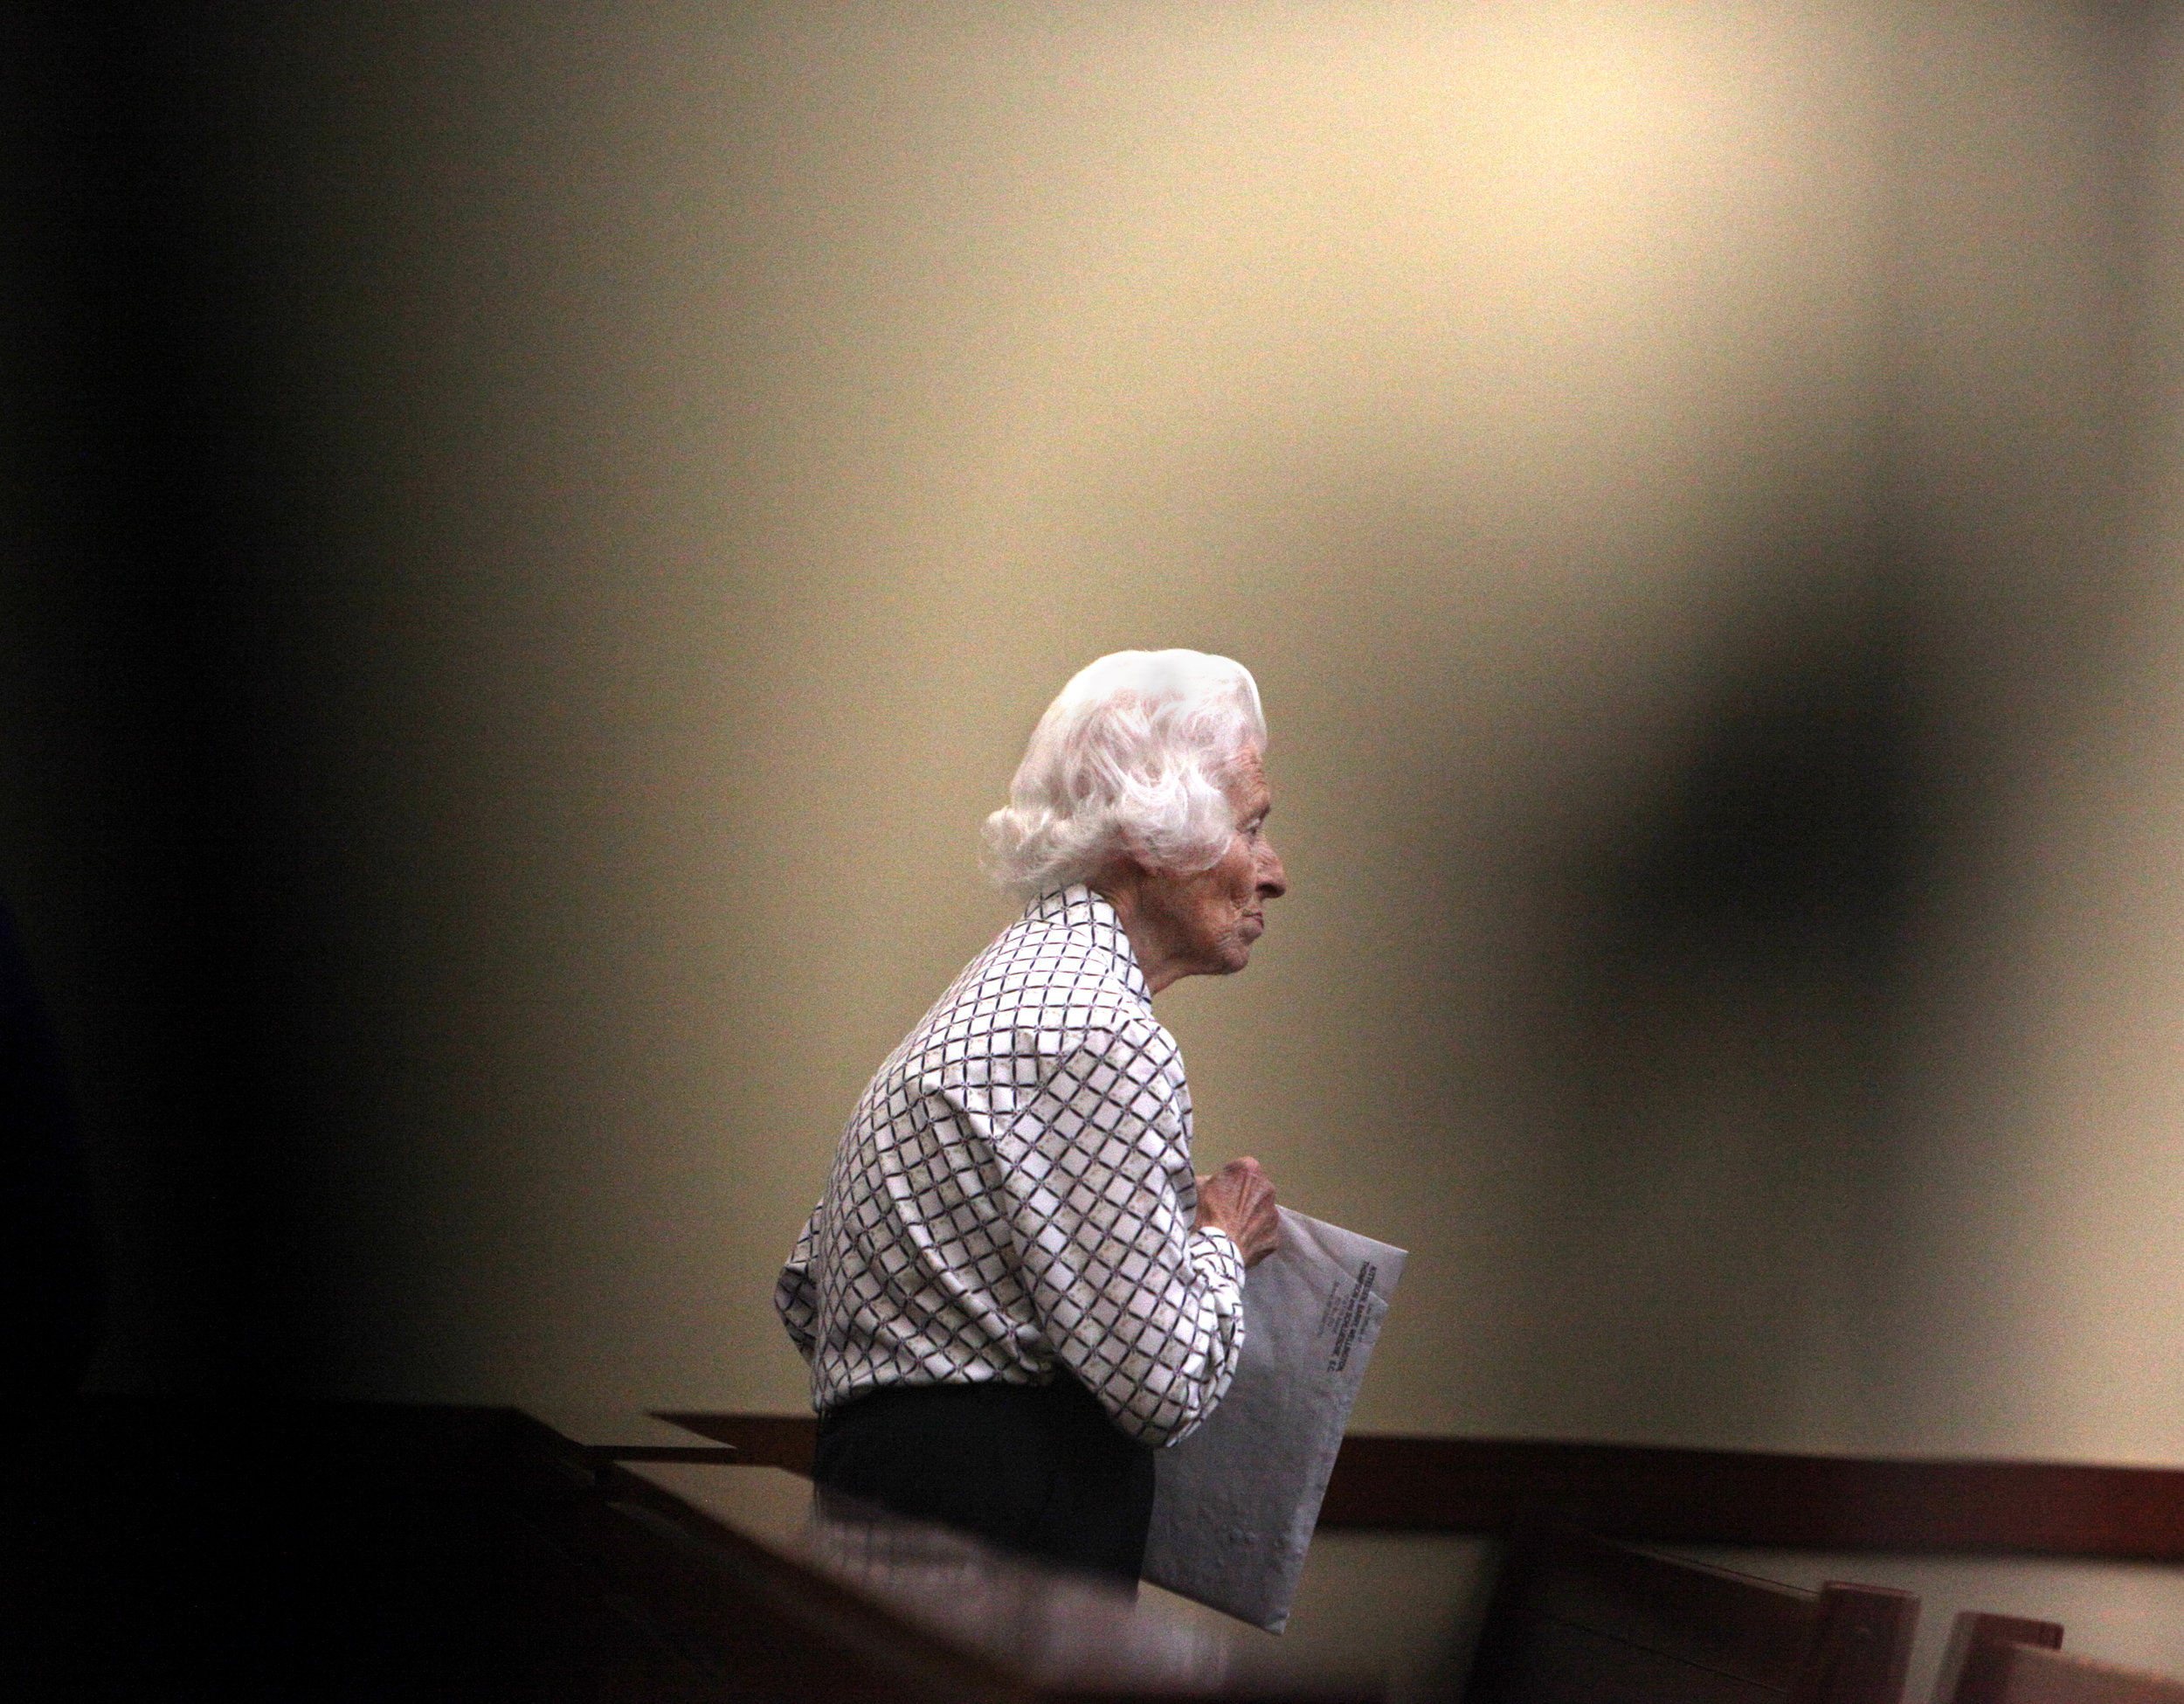 Dolores Marti, 87, walks away while video camera tripods block some of the foreground after her hearing at the Green County Justice Center August 19, 2016. Over 50 cats were seized from Marti's home alive, and 46 were found dead, of which 35 kittens and 6 adult cats were found in a freezer.